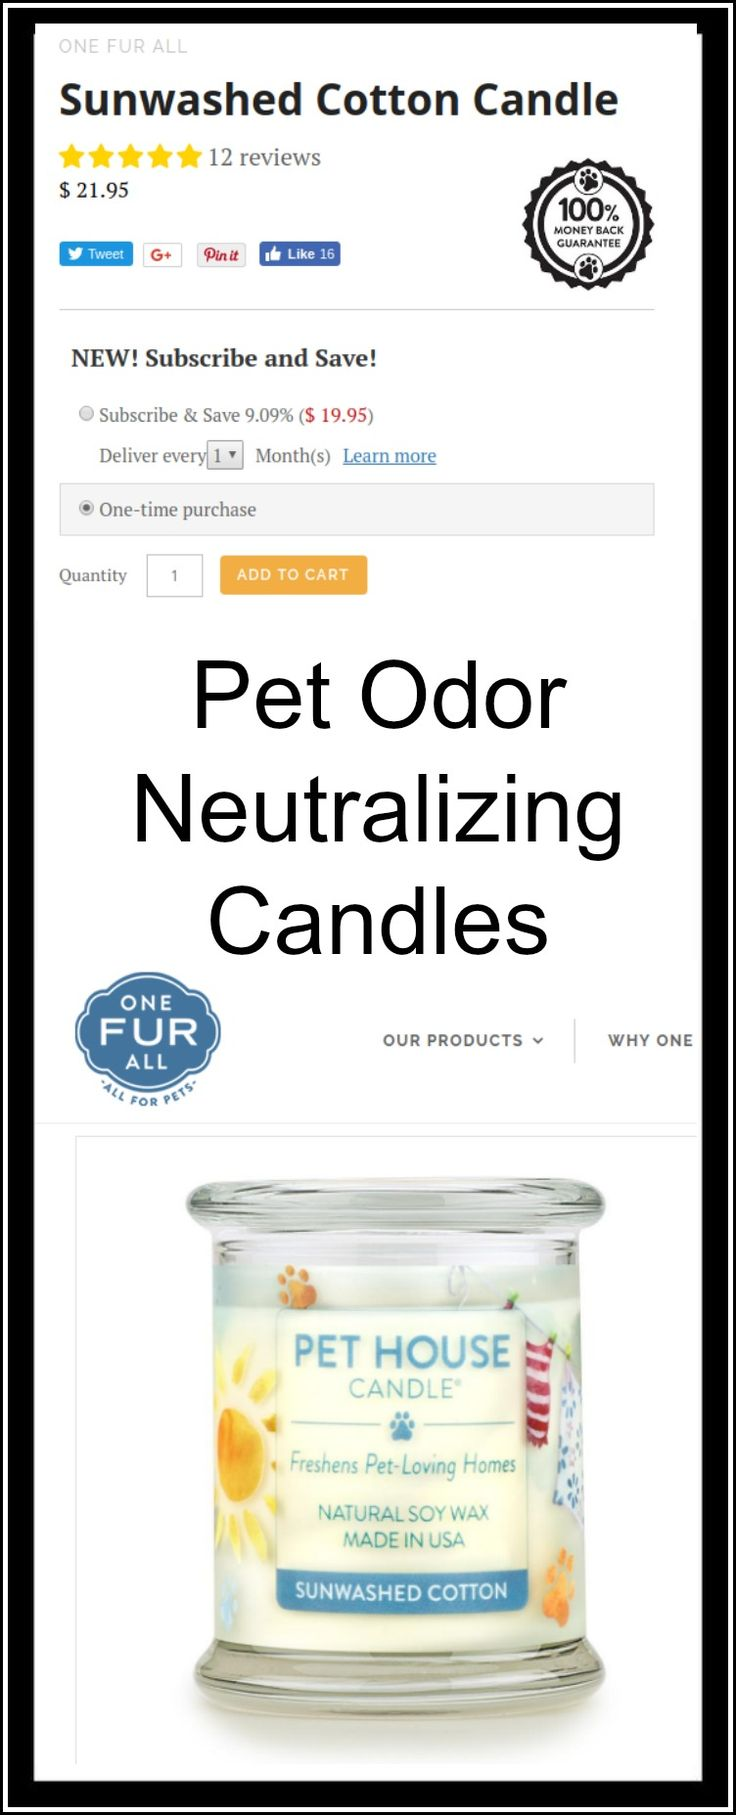 Click to purchase PET ODOR Neutralizing Candles from One Fur All. Pet House Candles Sun Washed Cotton candles help eliminate pet odors. Pet Hacks.